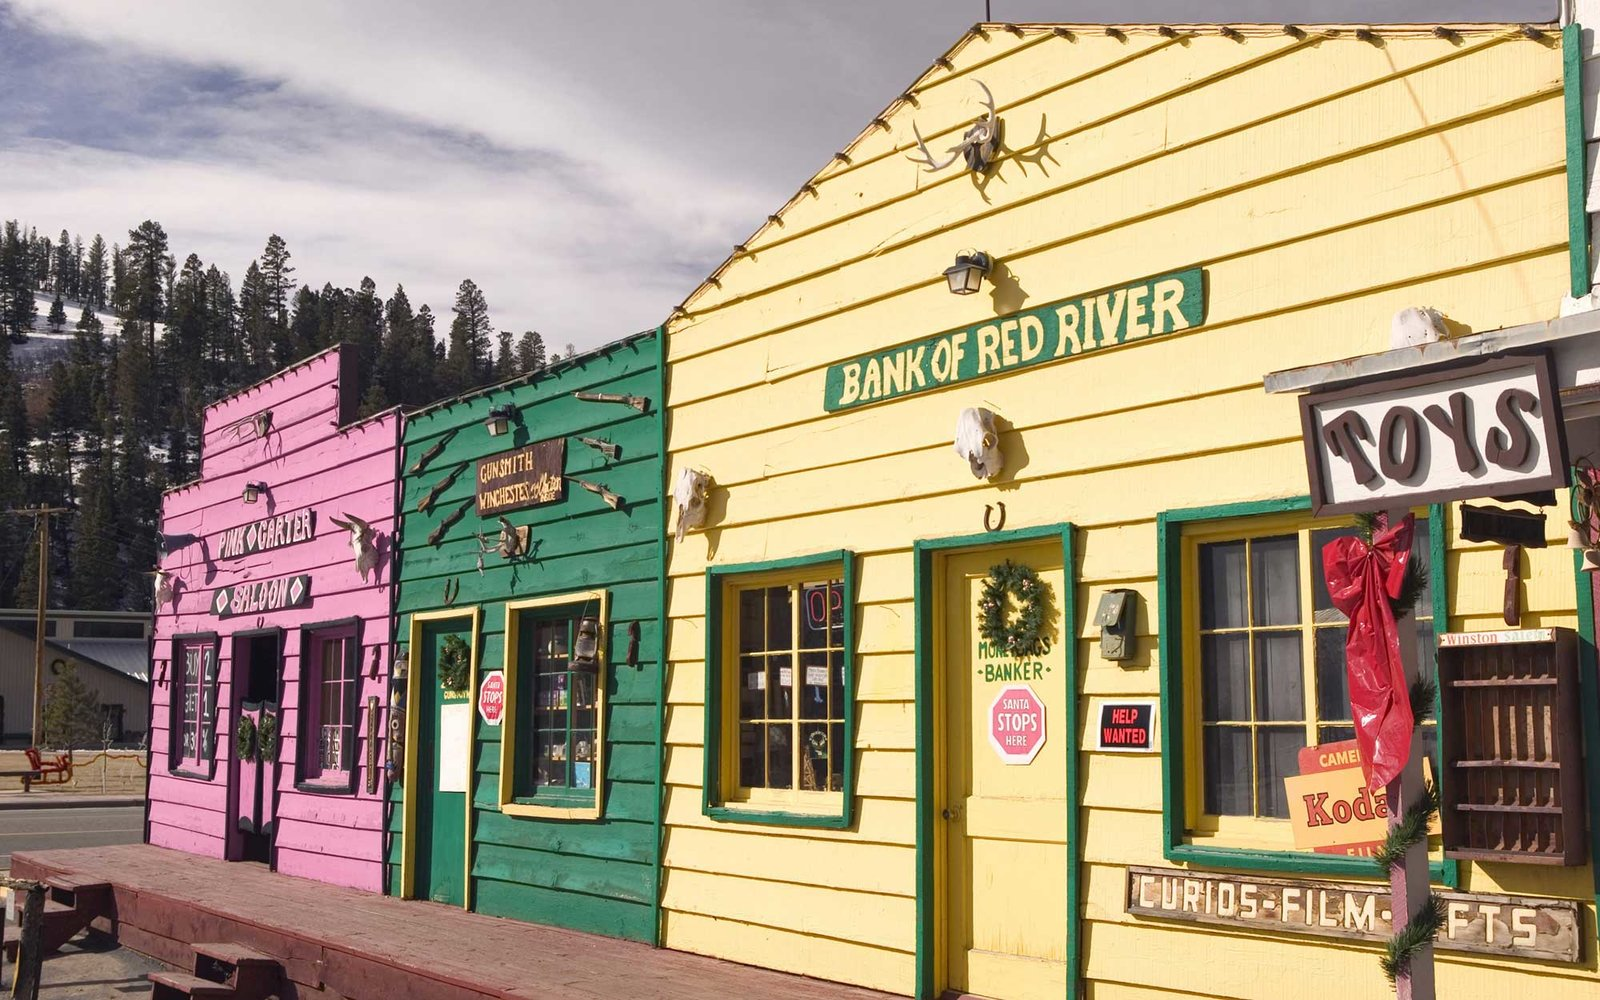 Fryes Old Town, Red River, New Mexico, USA